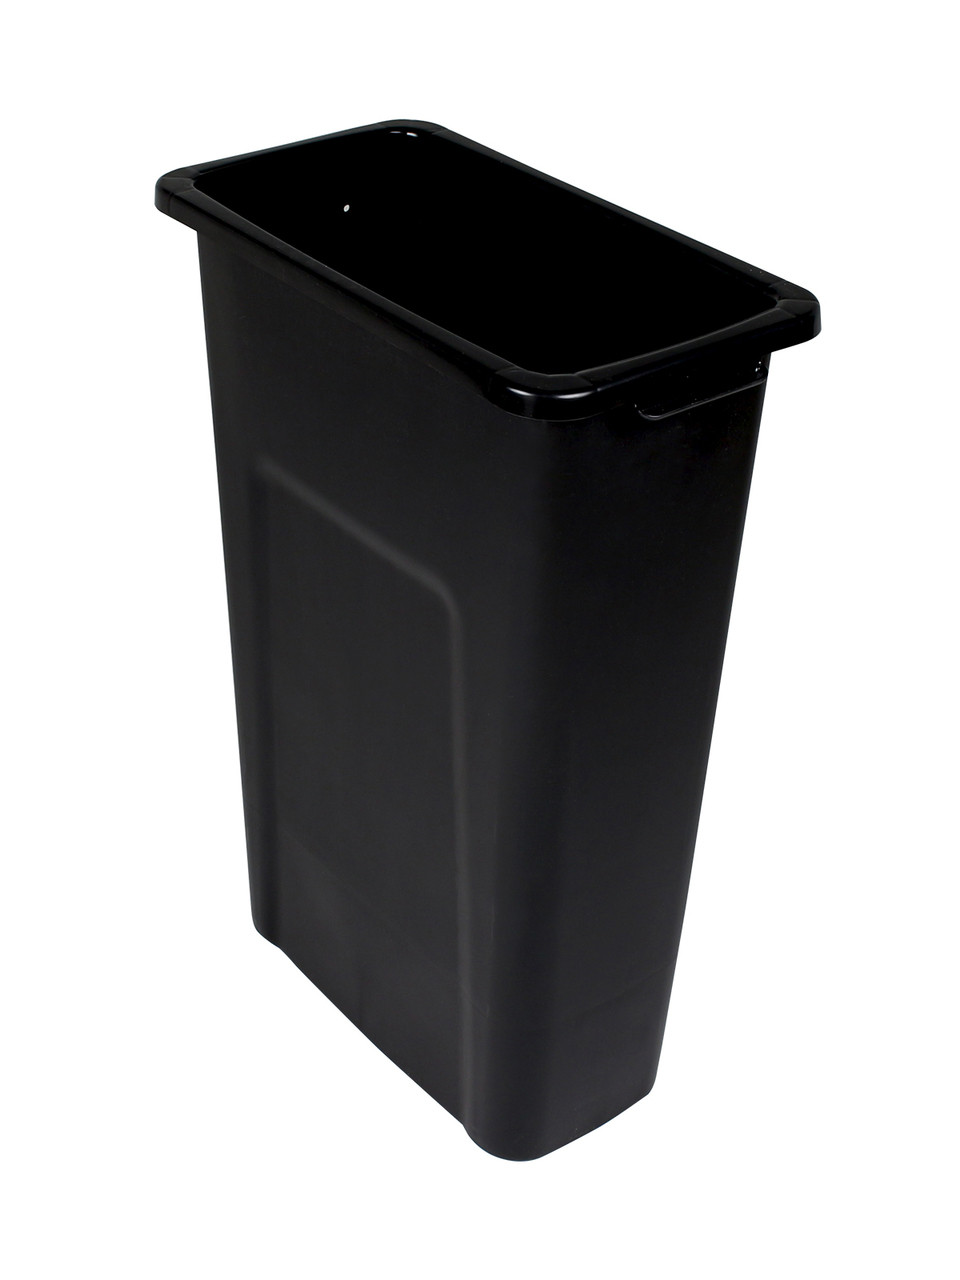 16 Gallon Skinny Plastic Home & Office Trash Can Black